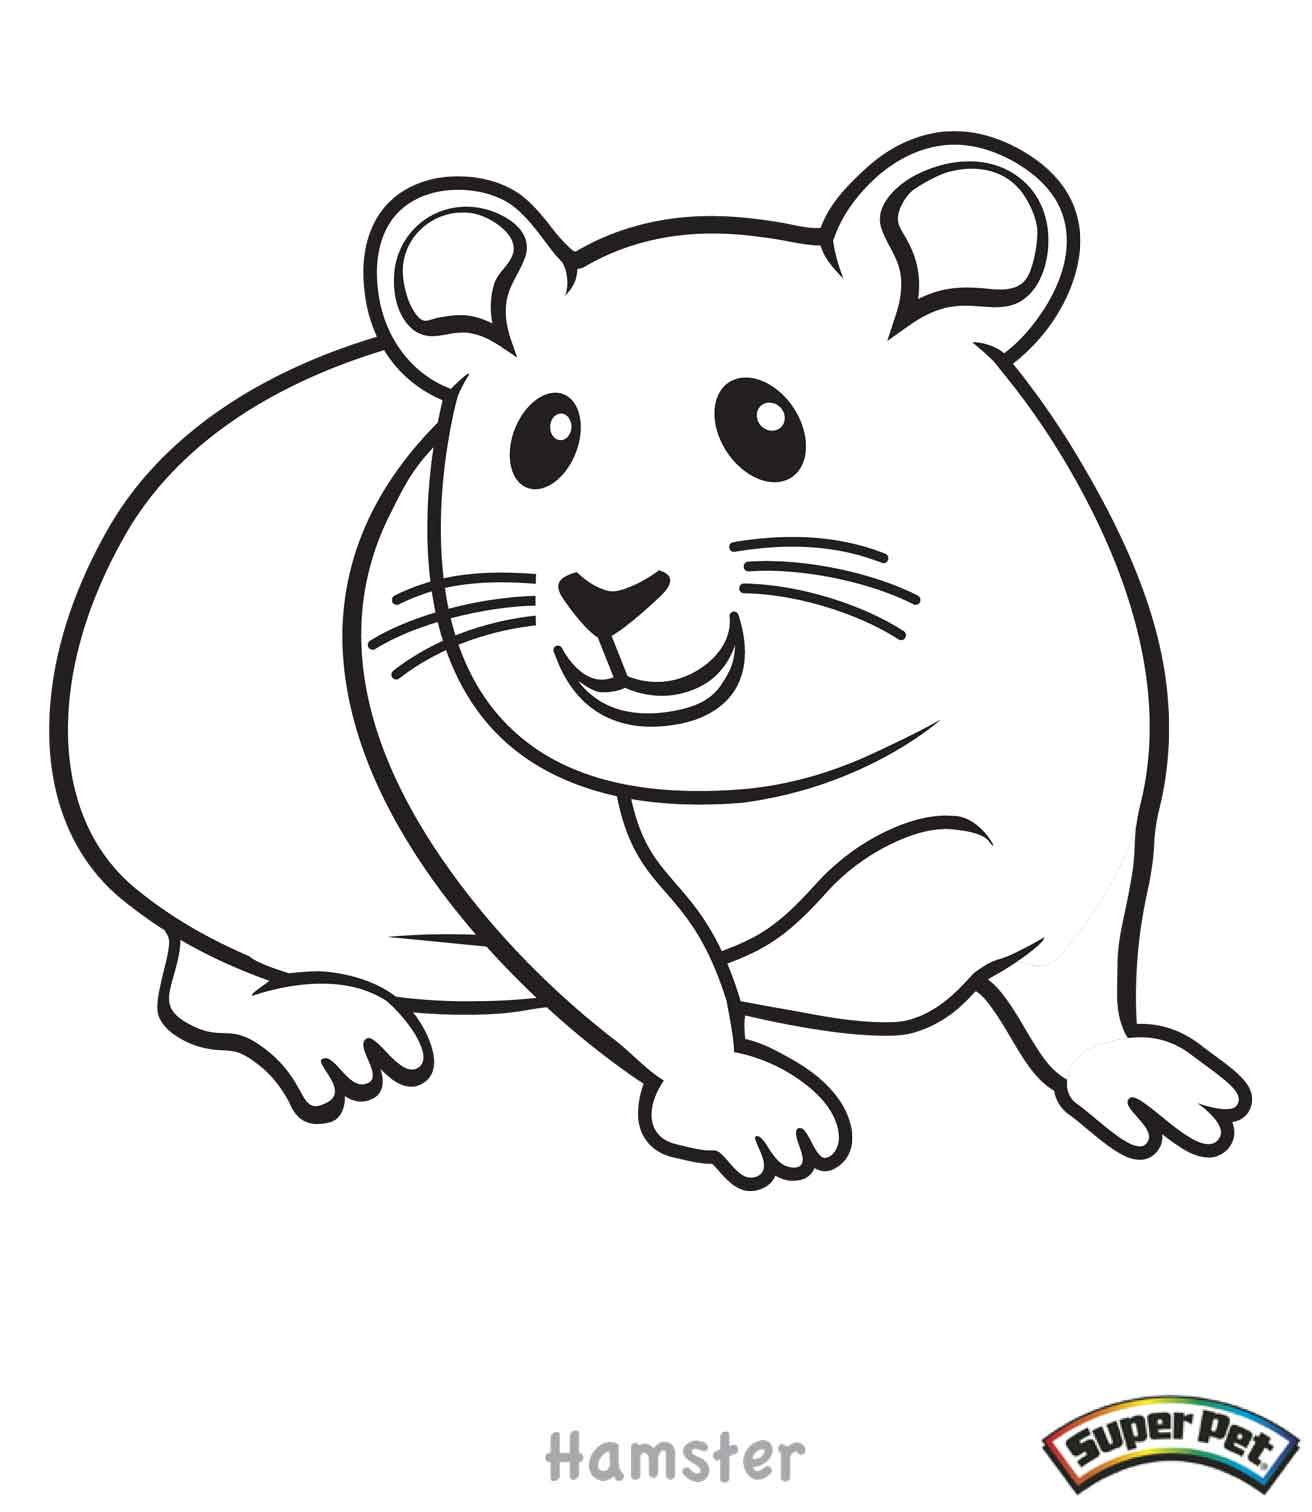 Hamster coloring pages to download